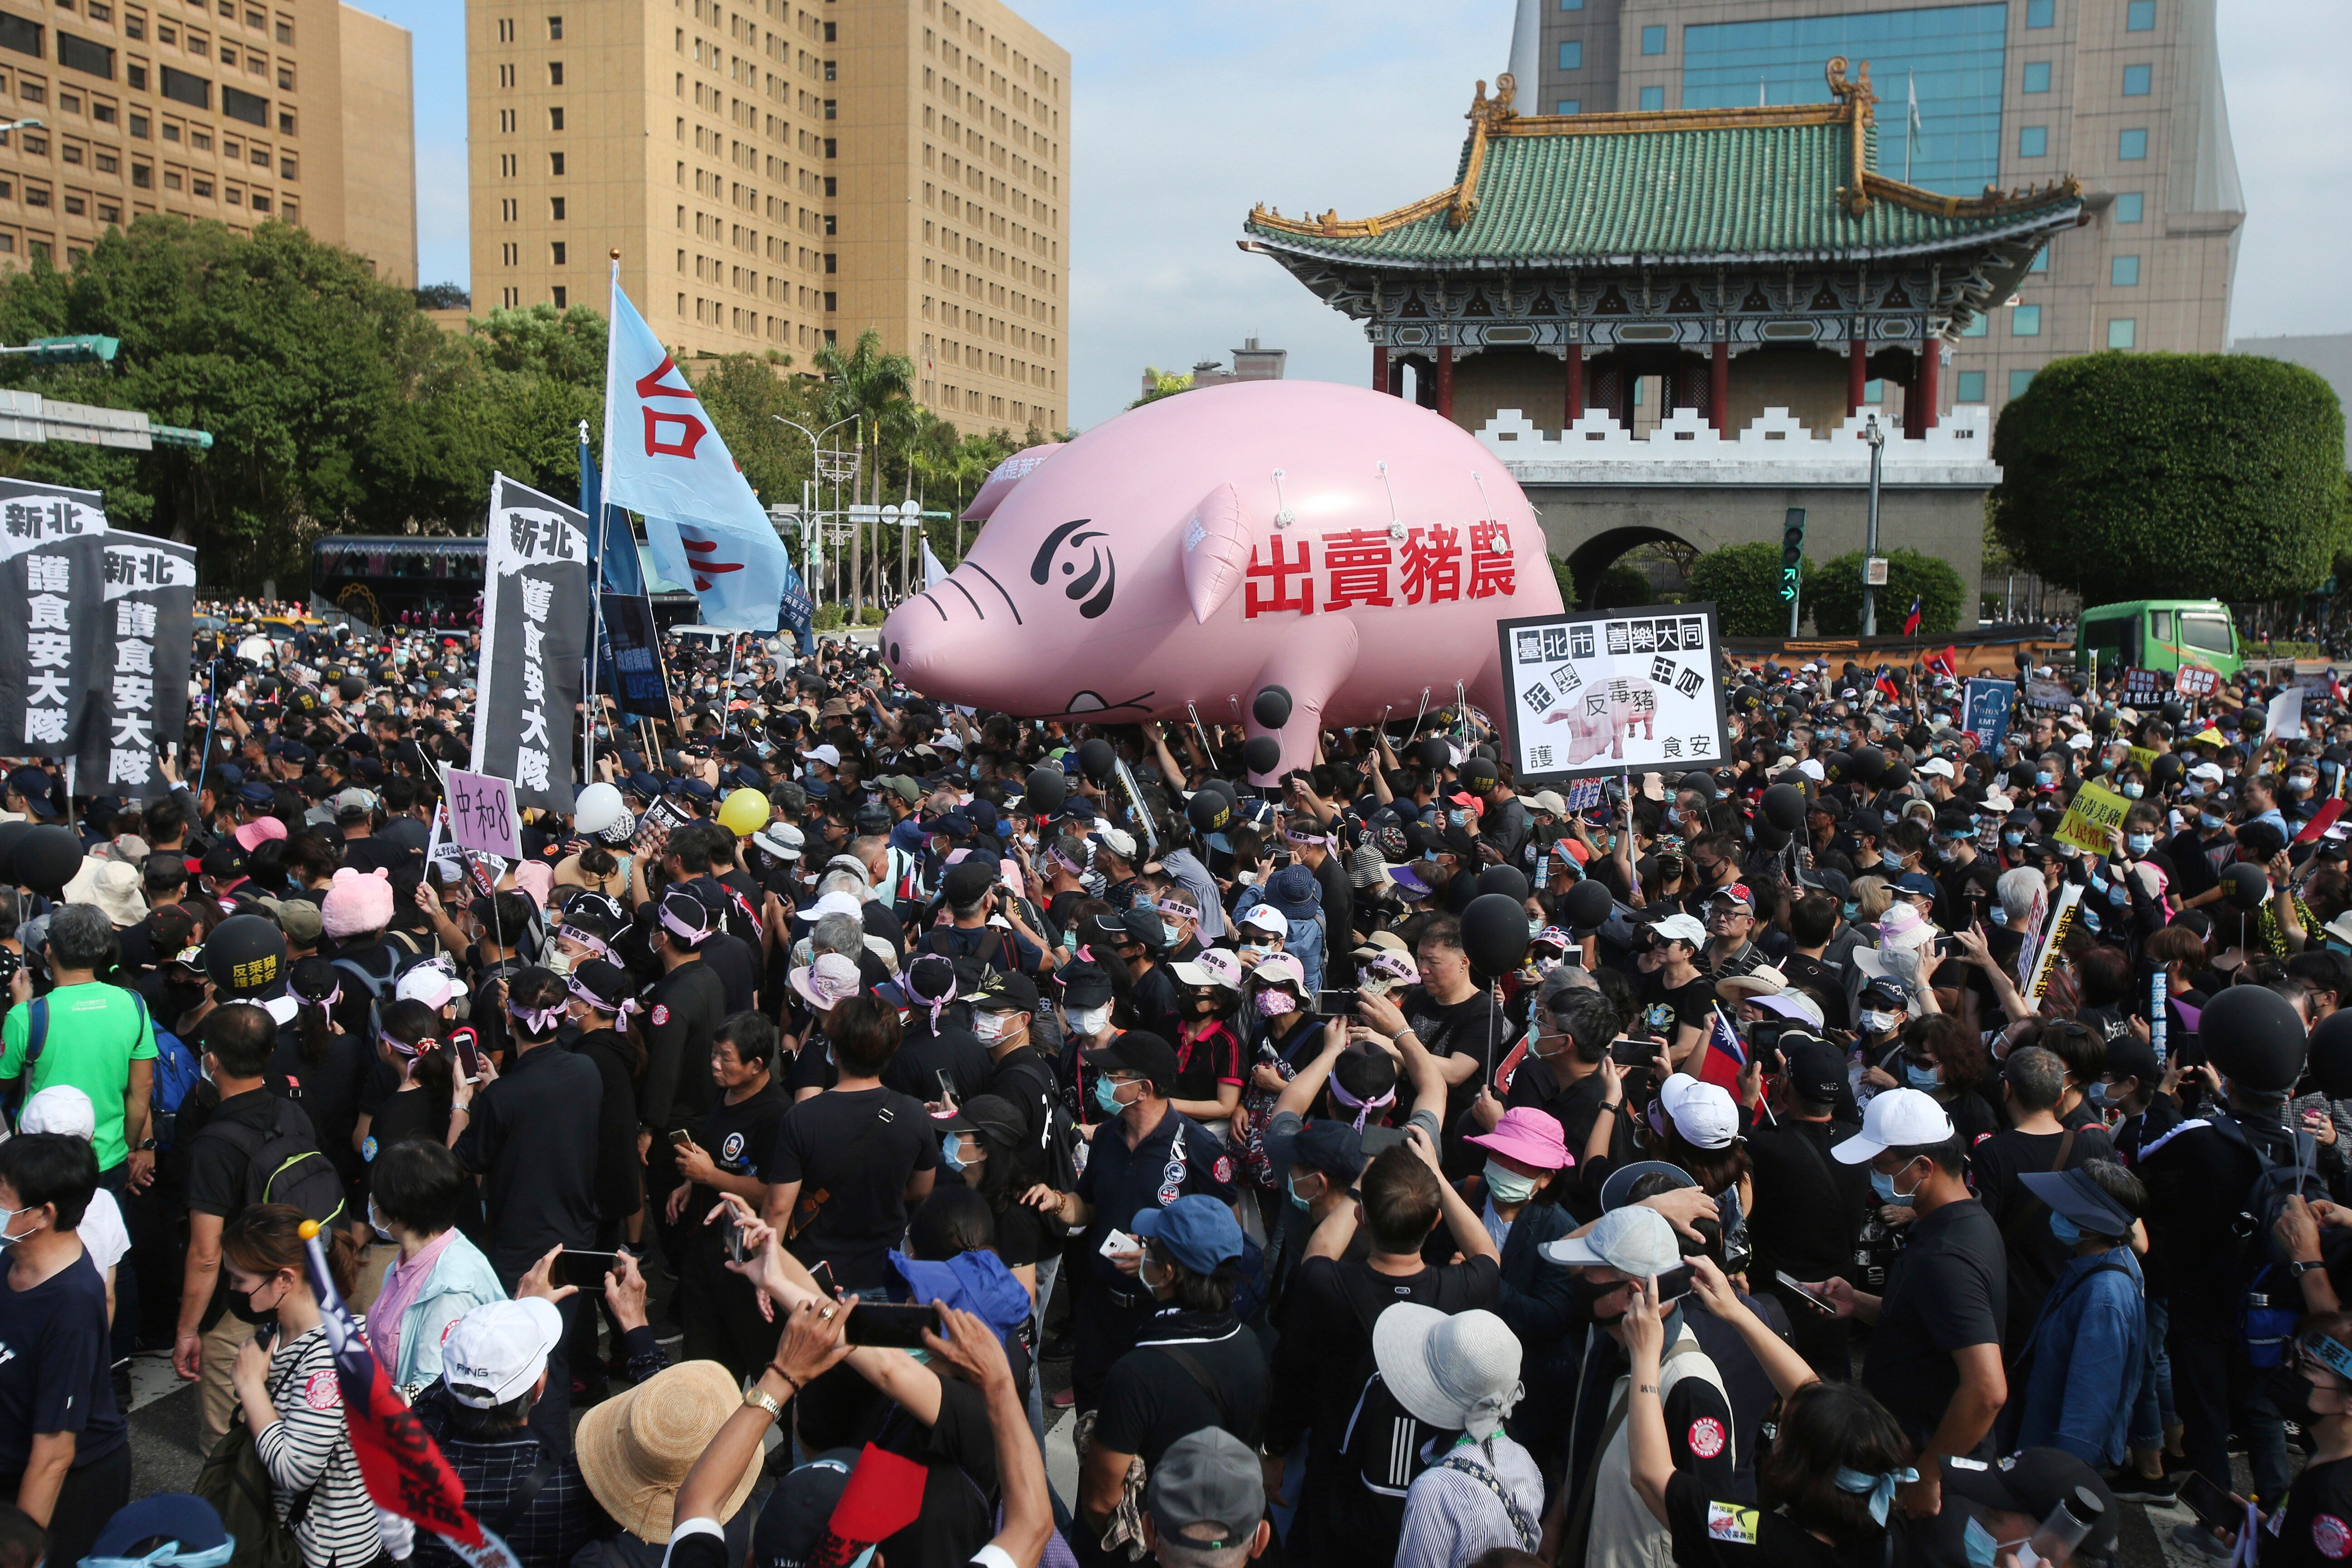 Thousands of people marched in streets on Sunday demanding the reversal of a decision to allow U.S. pork imports into Taiwan,